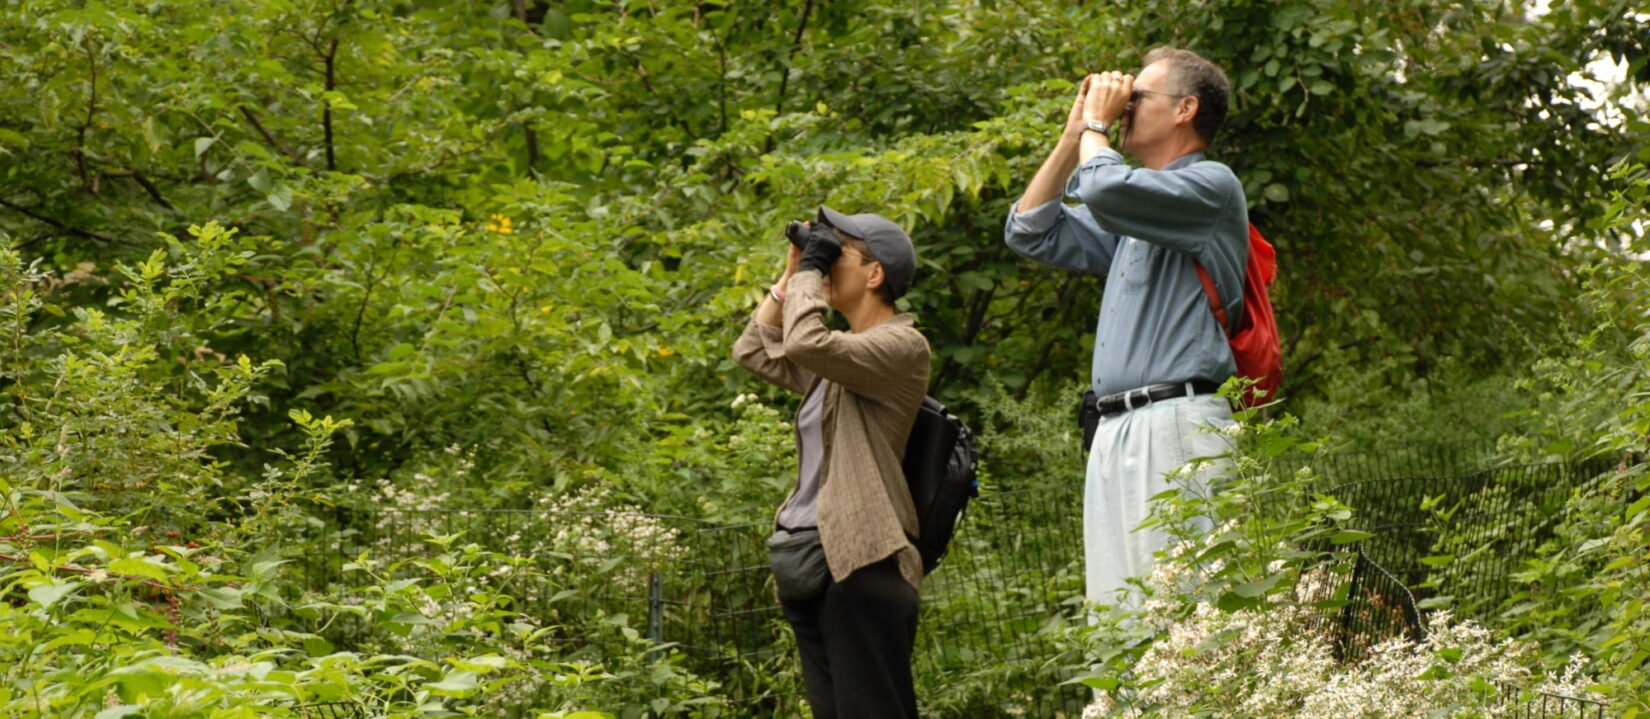 A couple use their binoculars in a woodland setting.